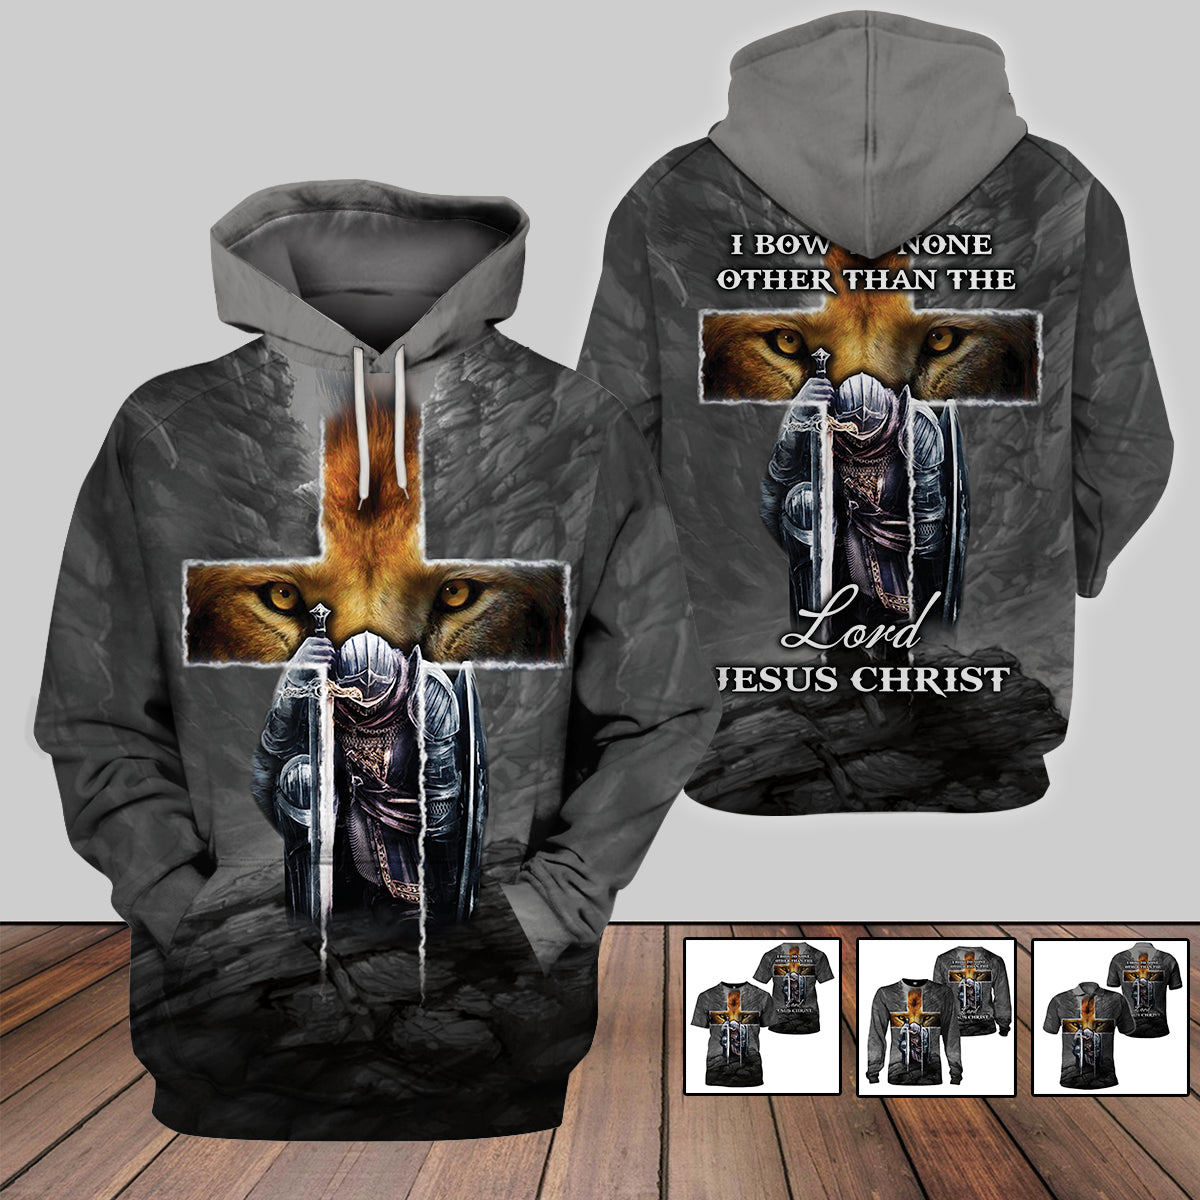 3D Christian Apparel - Newest Design